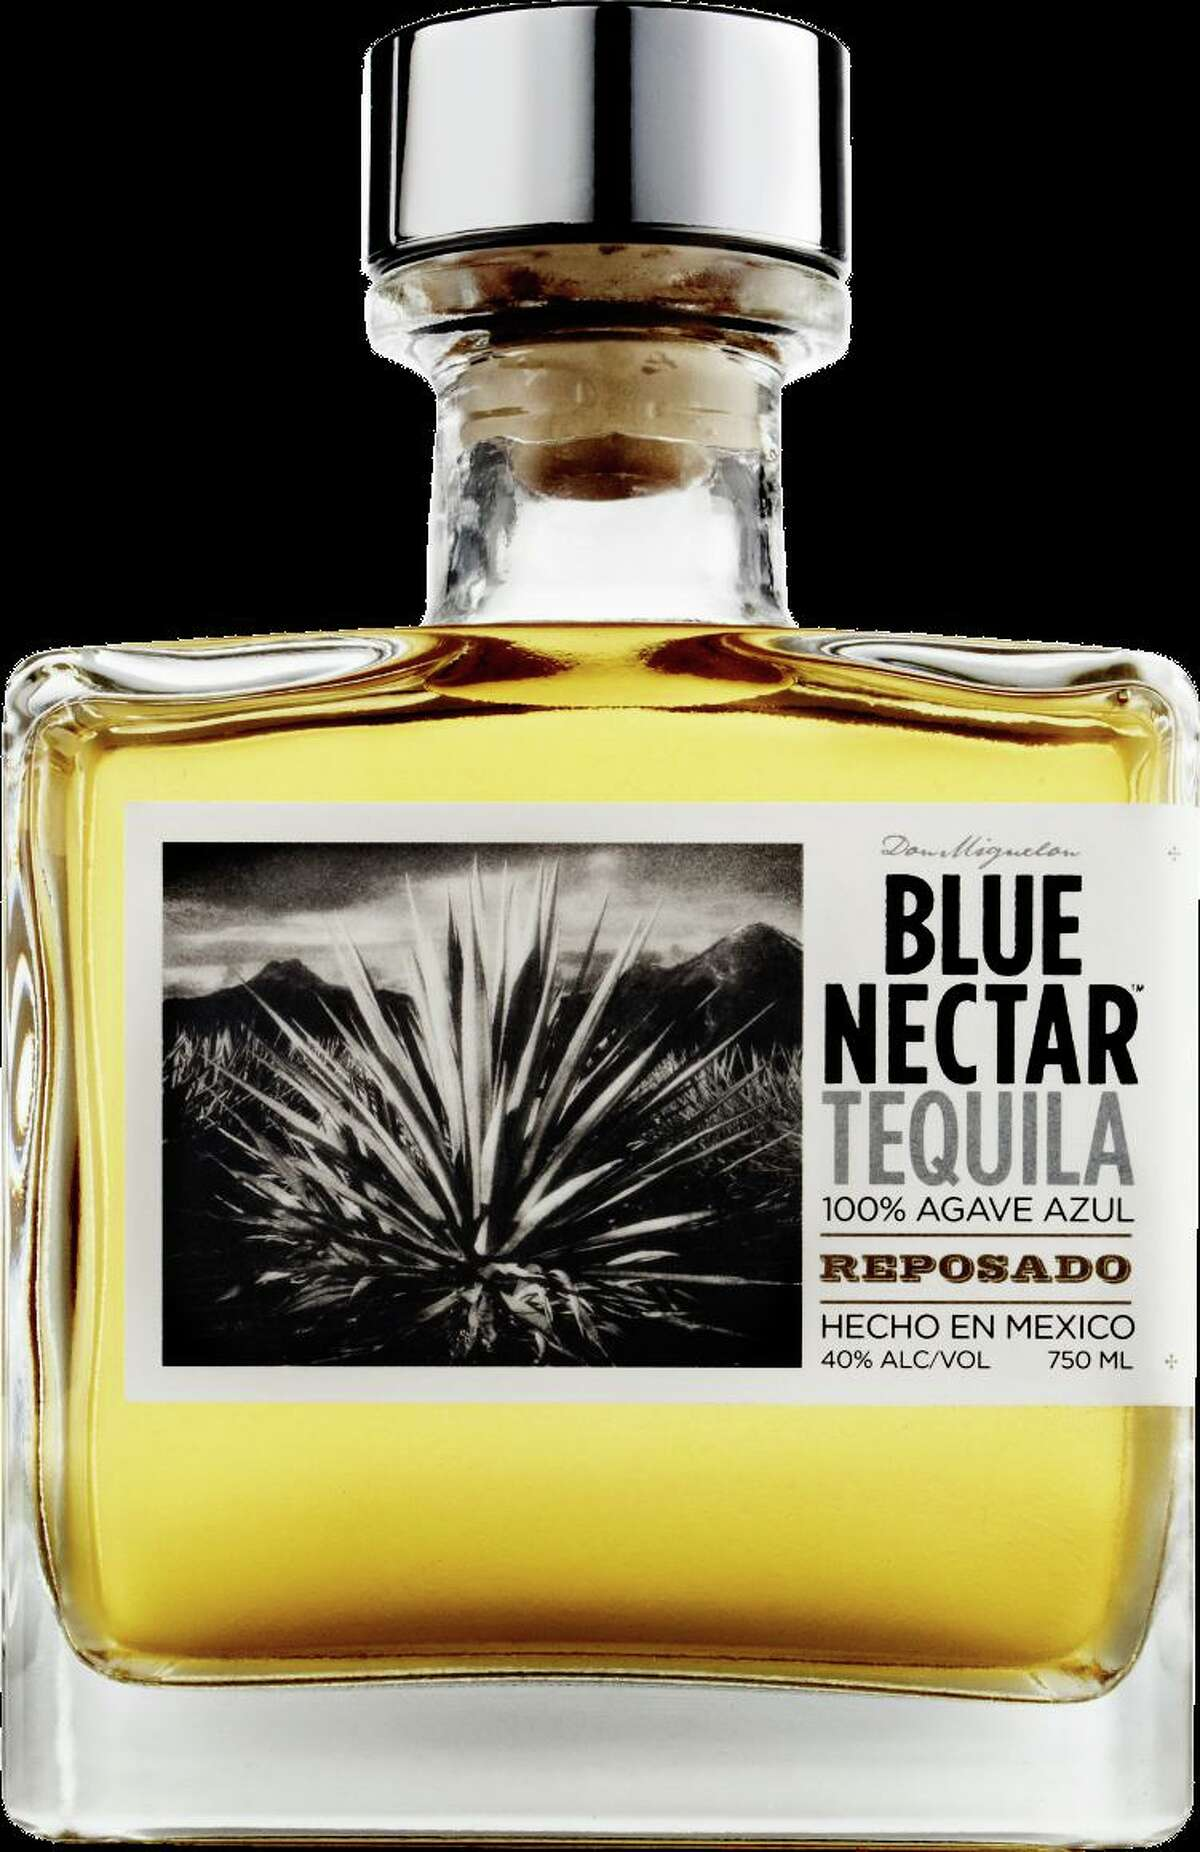 A rising star in the tequila realm, Blue Nectar is a 100 percent blue agave, super-premium tequila. The line includes Silver, Special Craft and Reposado (shown here, $44.99) that is a smooth blend of reposado and extra anejo tequilas. On Cinco de Mayo Reef restaurant will be running a Blue Nectar promotion.